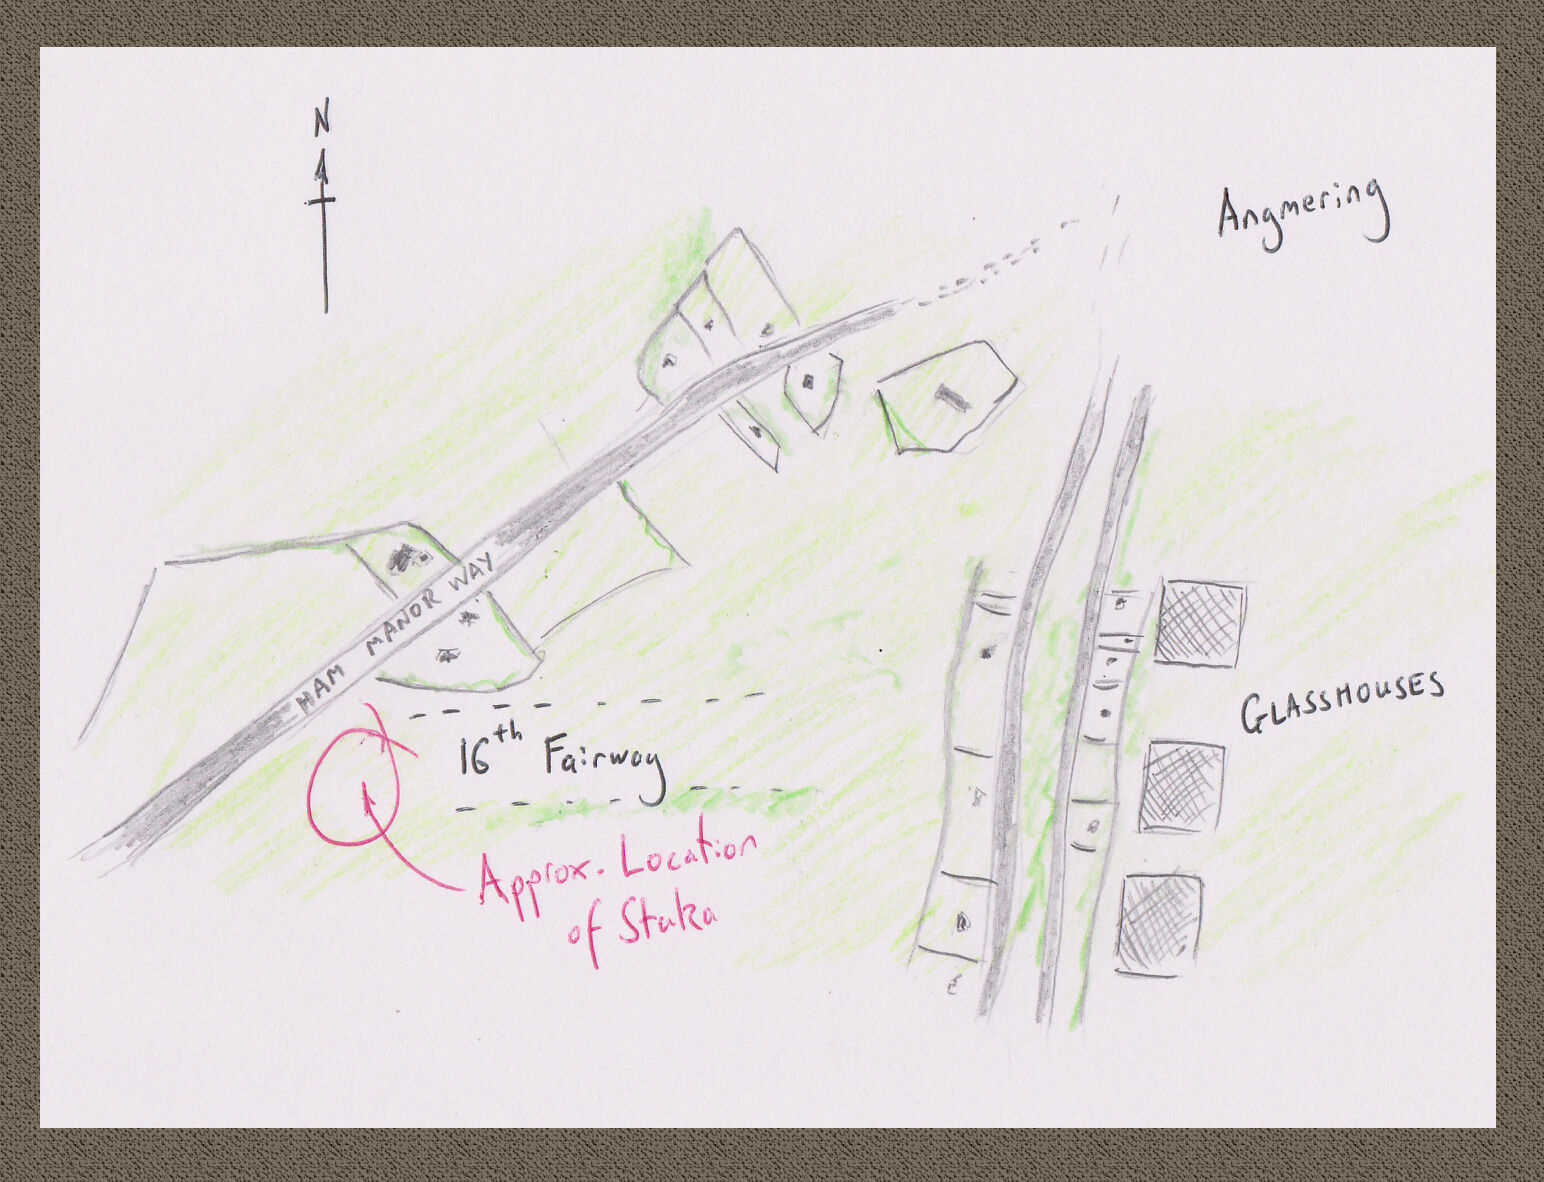 Sketch map showing Ham Manor Golf Course at Angmering as it was in the Thirties